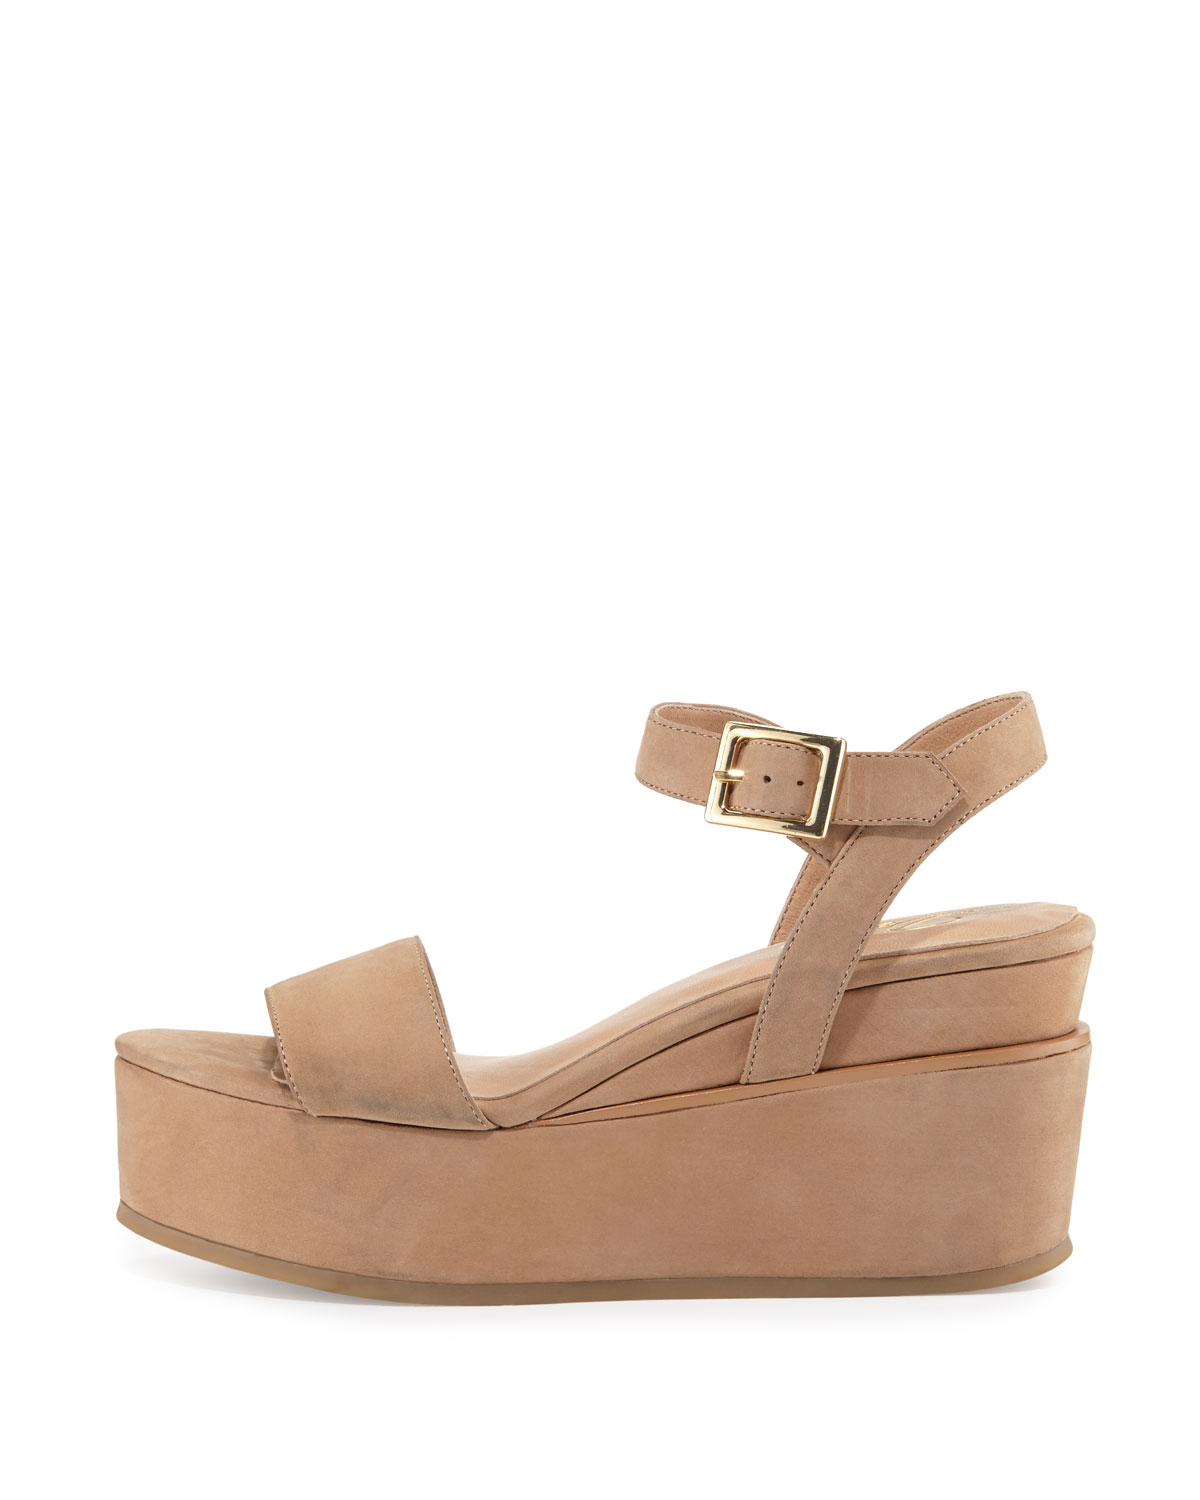 Lyst Delman Angie Nubuck Wedge Sandal In Natural